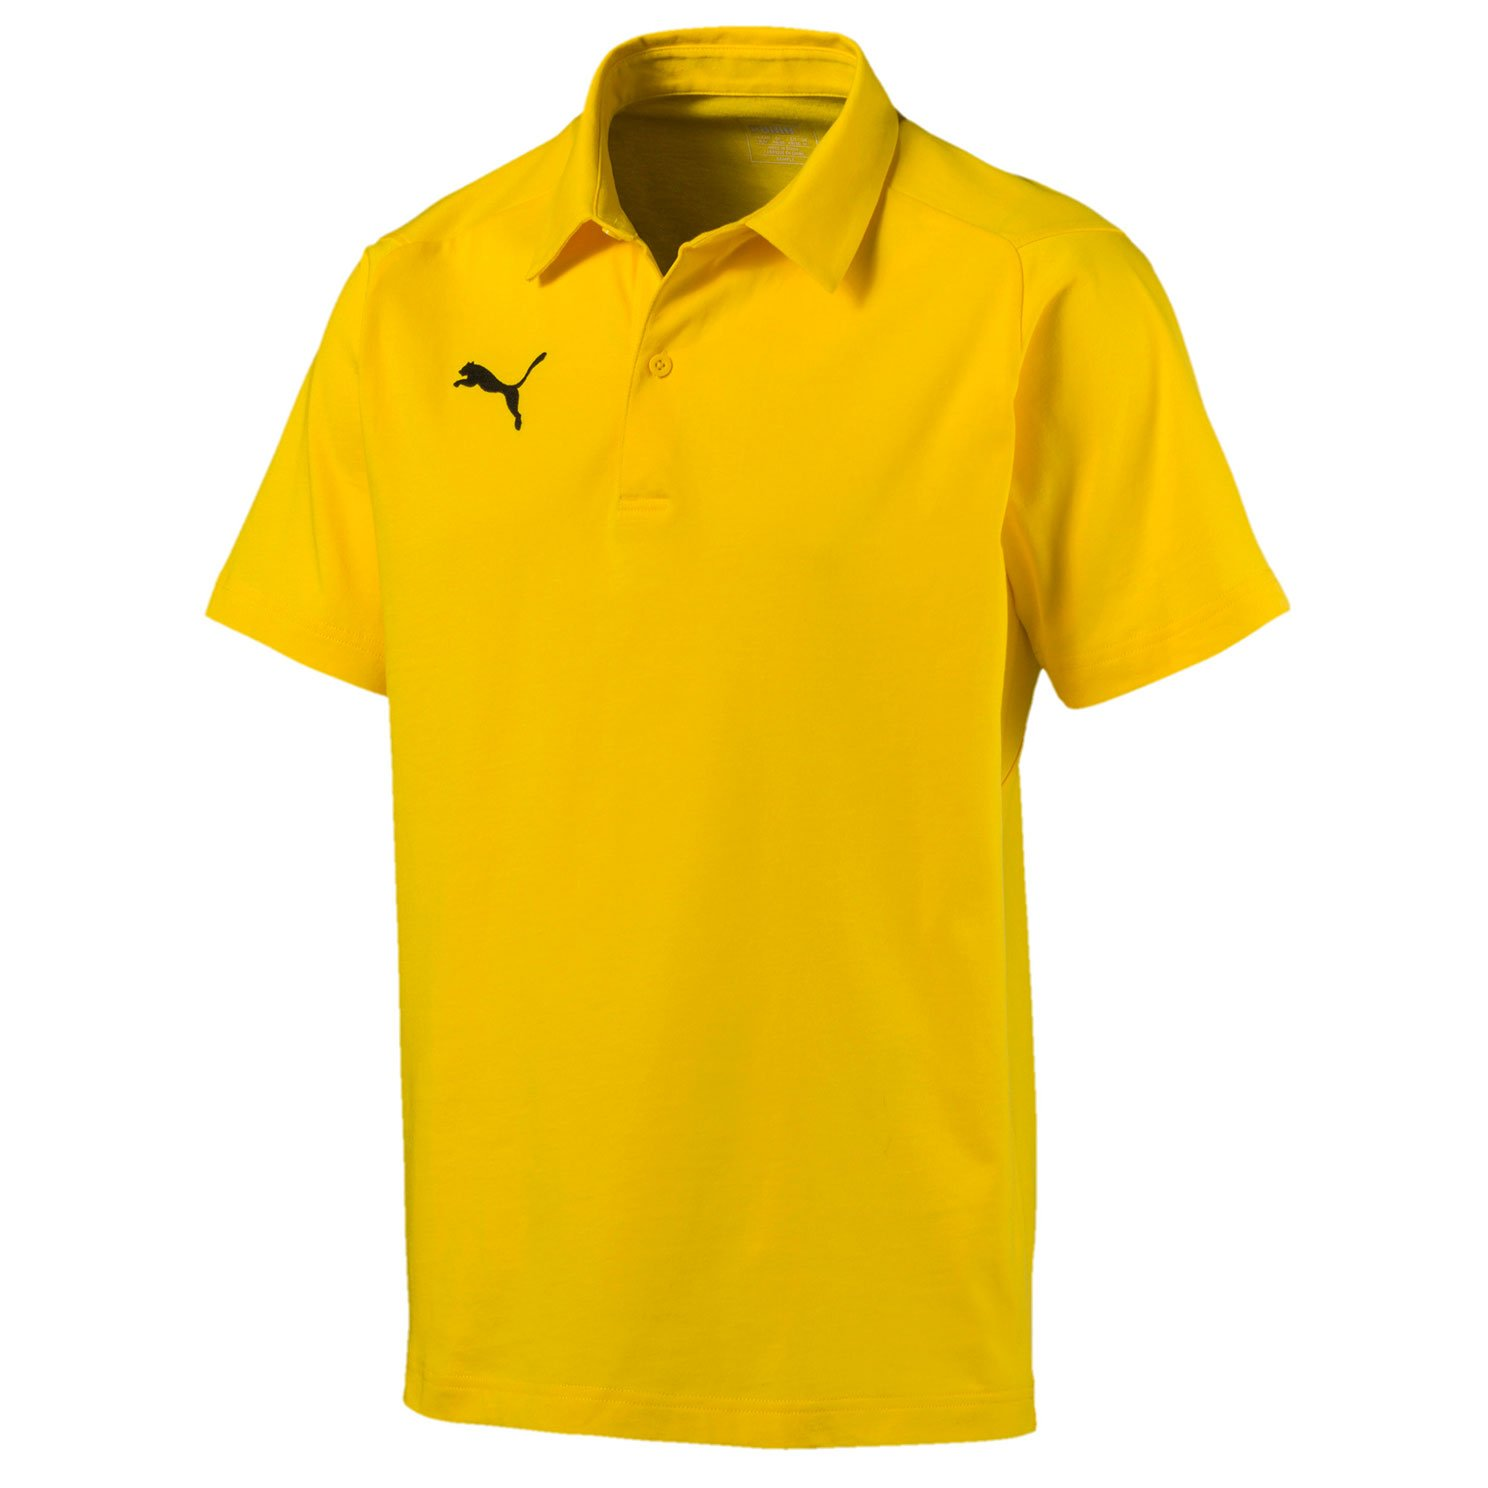 Поло хб Puma LIGA Casuals Polo